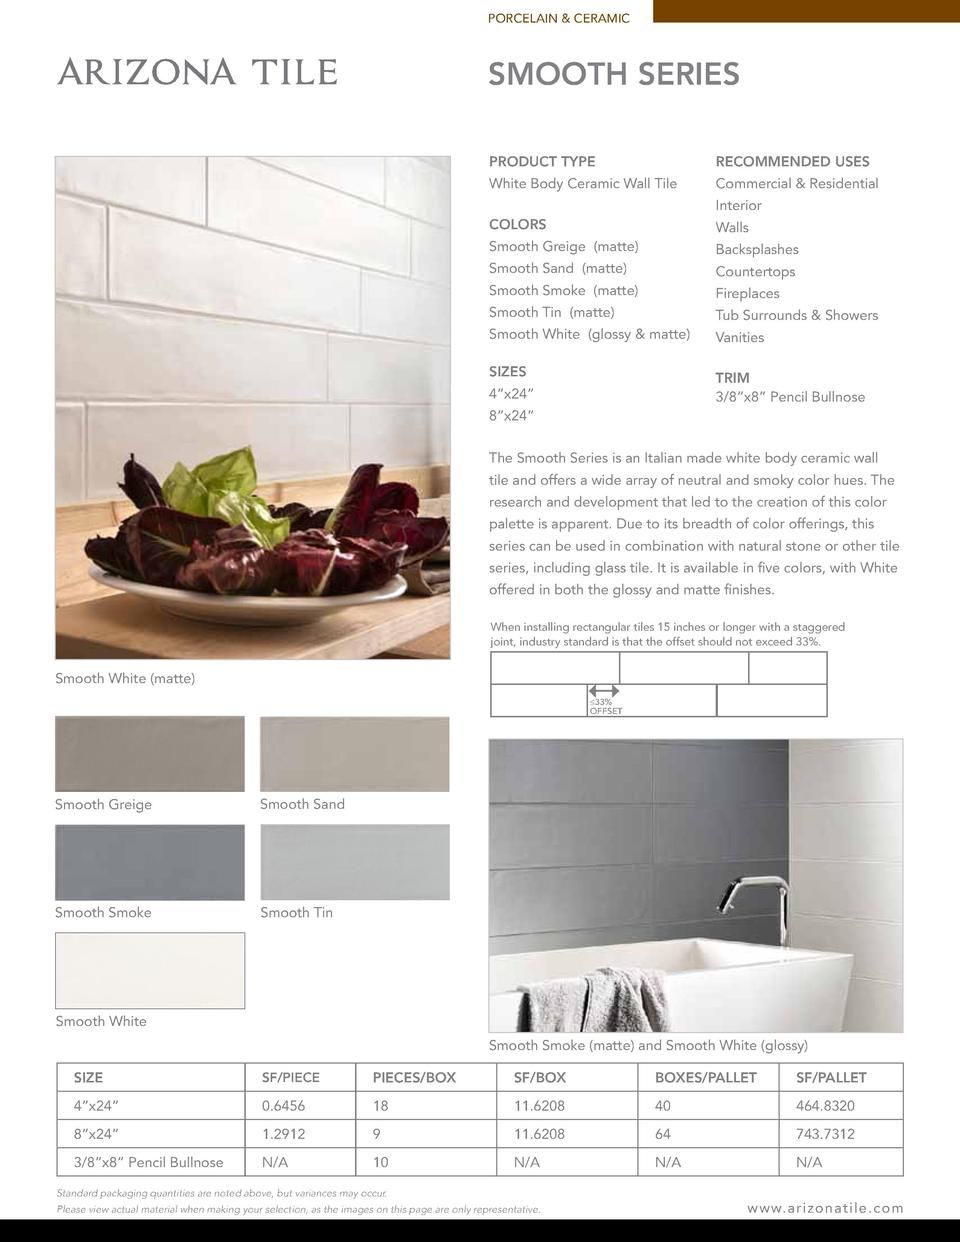 PORCELAIN   CERAMIC  SMOOTH SERIES PRODUCT TYPE  RECOMMENDED USES  White Body Ceramic Wall Tile  Commercial   Residential ...